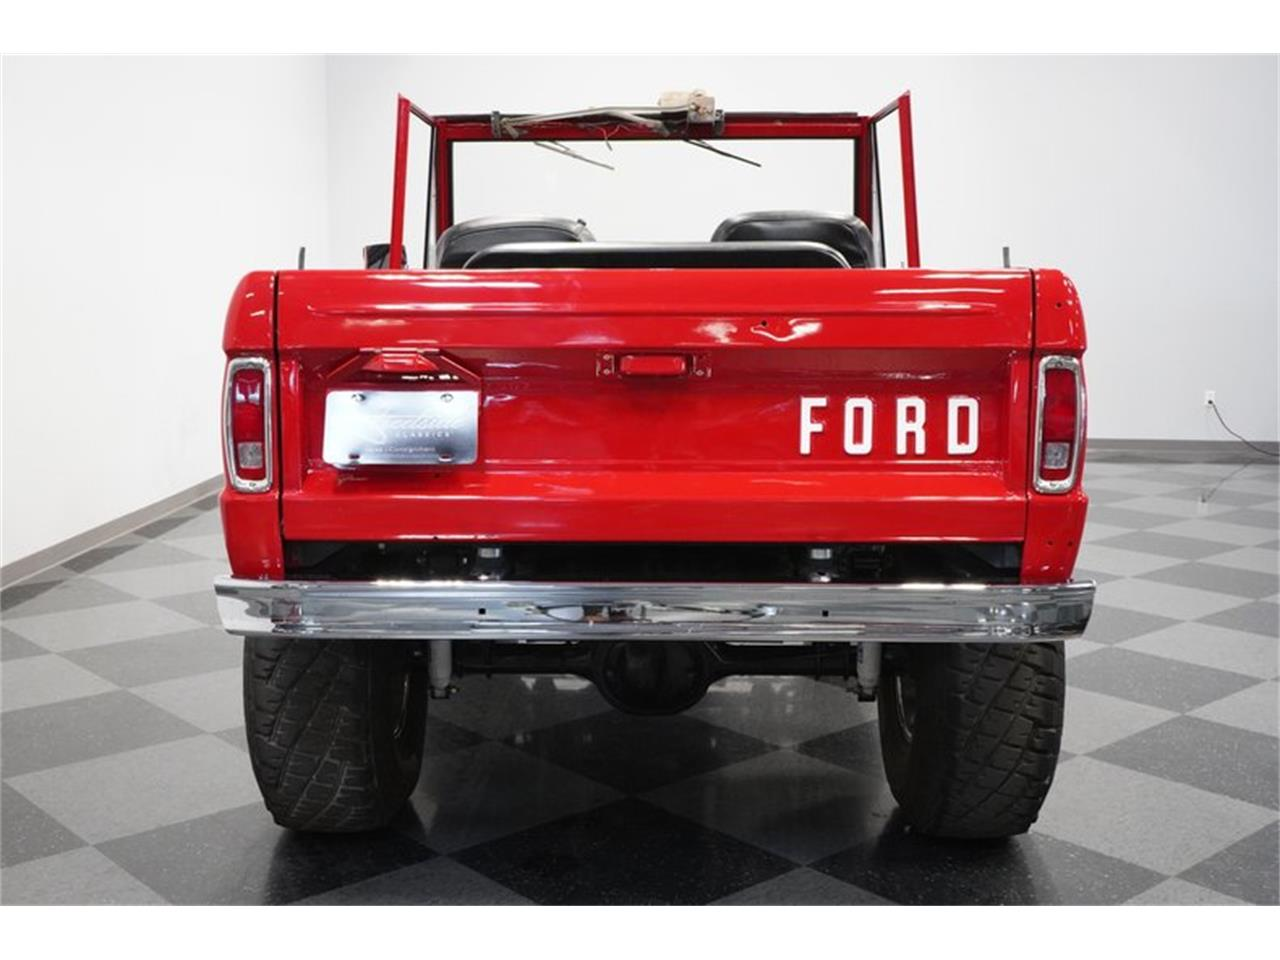 Large Picture of '75 Ford Bronco located in Arizona - $43,995.00 - Q516